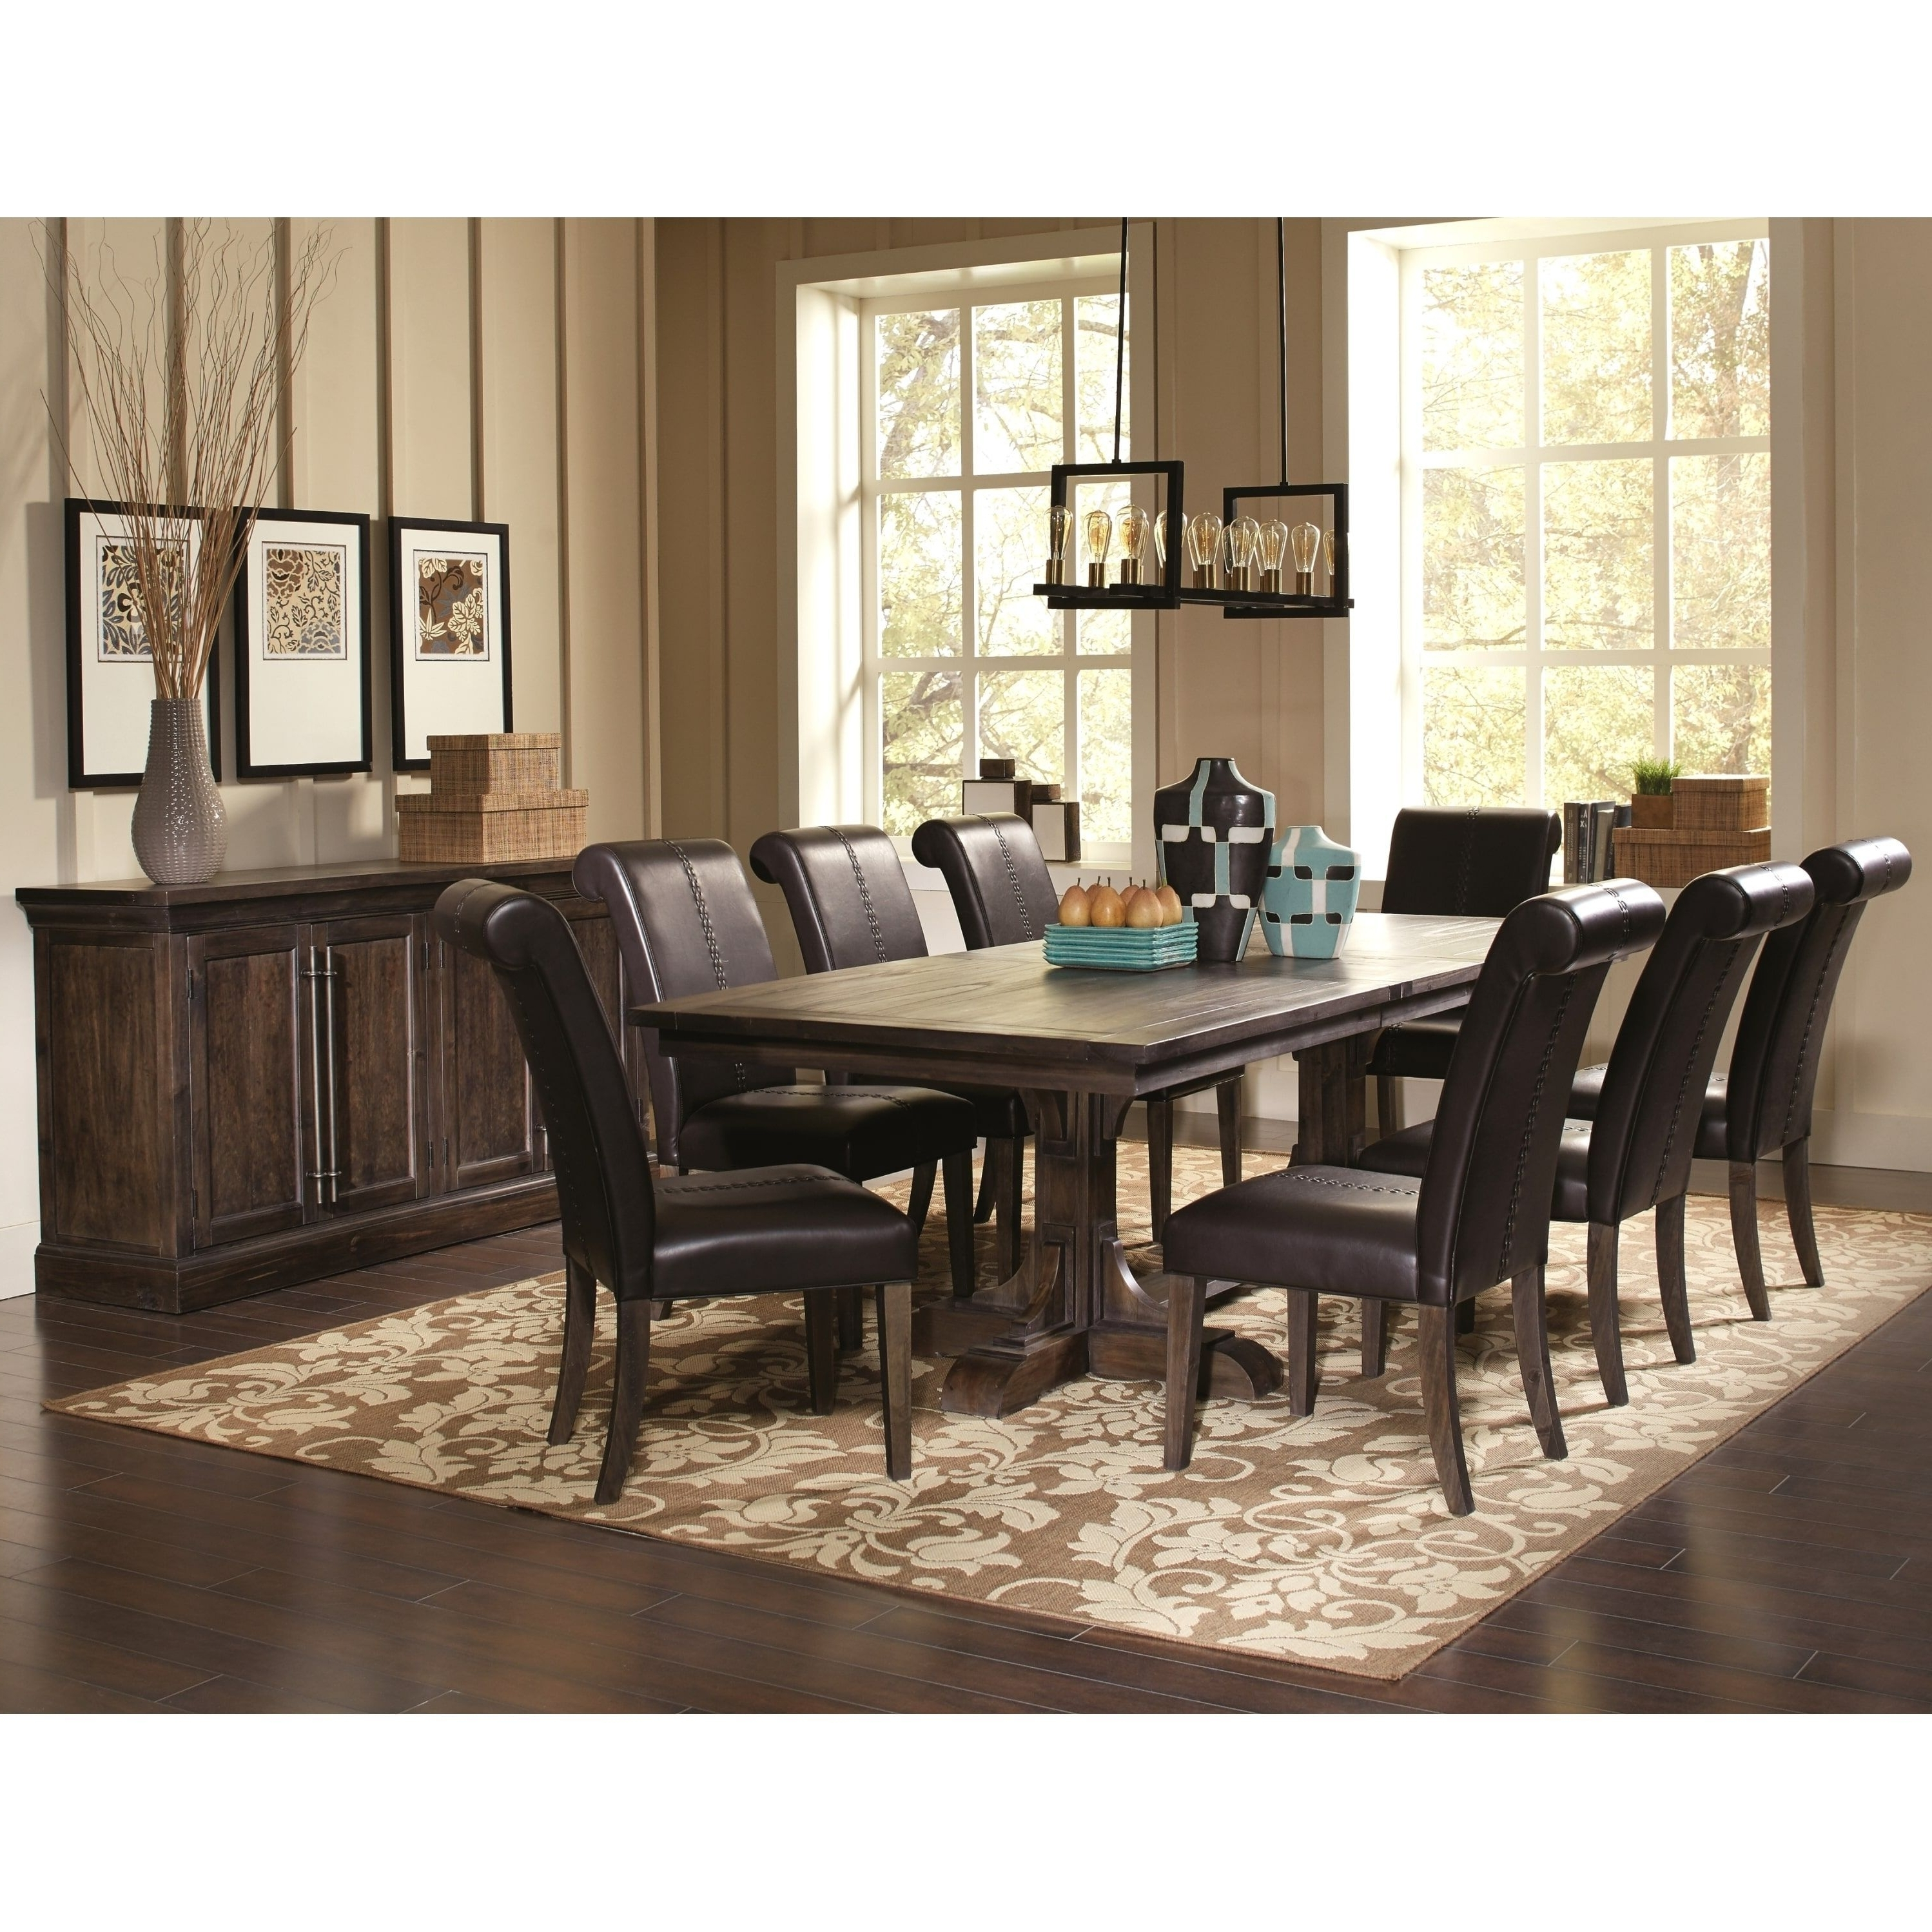 French Baroque Designed Dining Set With Storage Buffet Server (1 Regarding Favorite 8 Chairs Dining Tables (View 12 of 25)